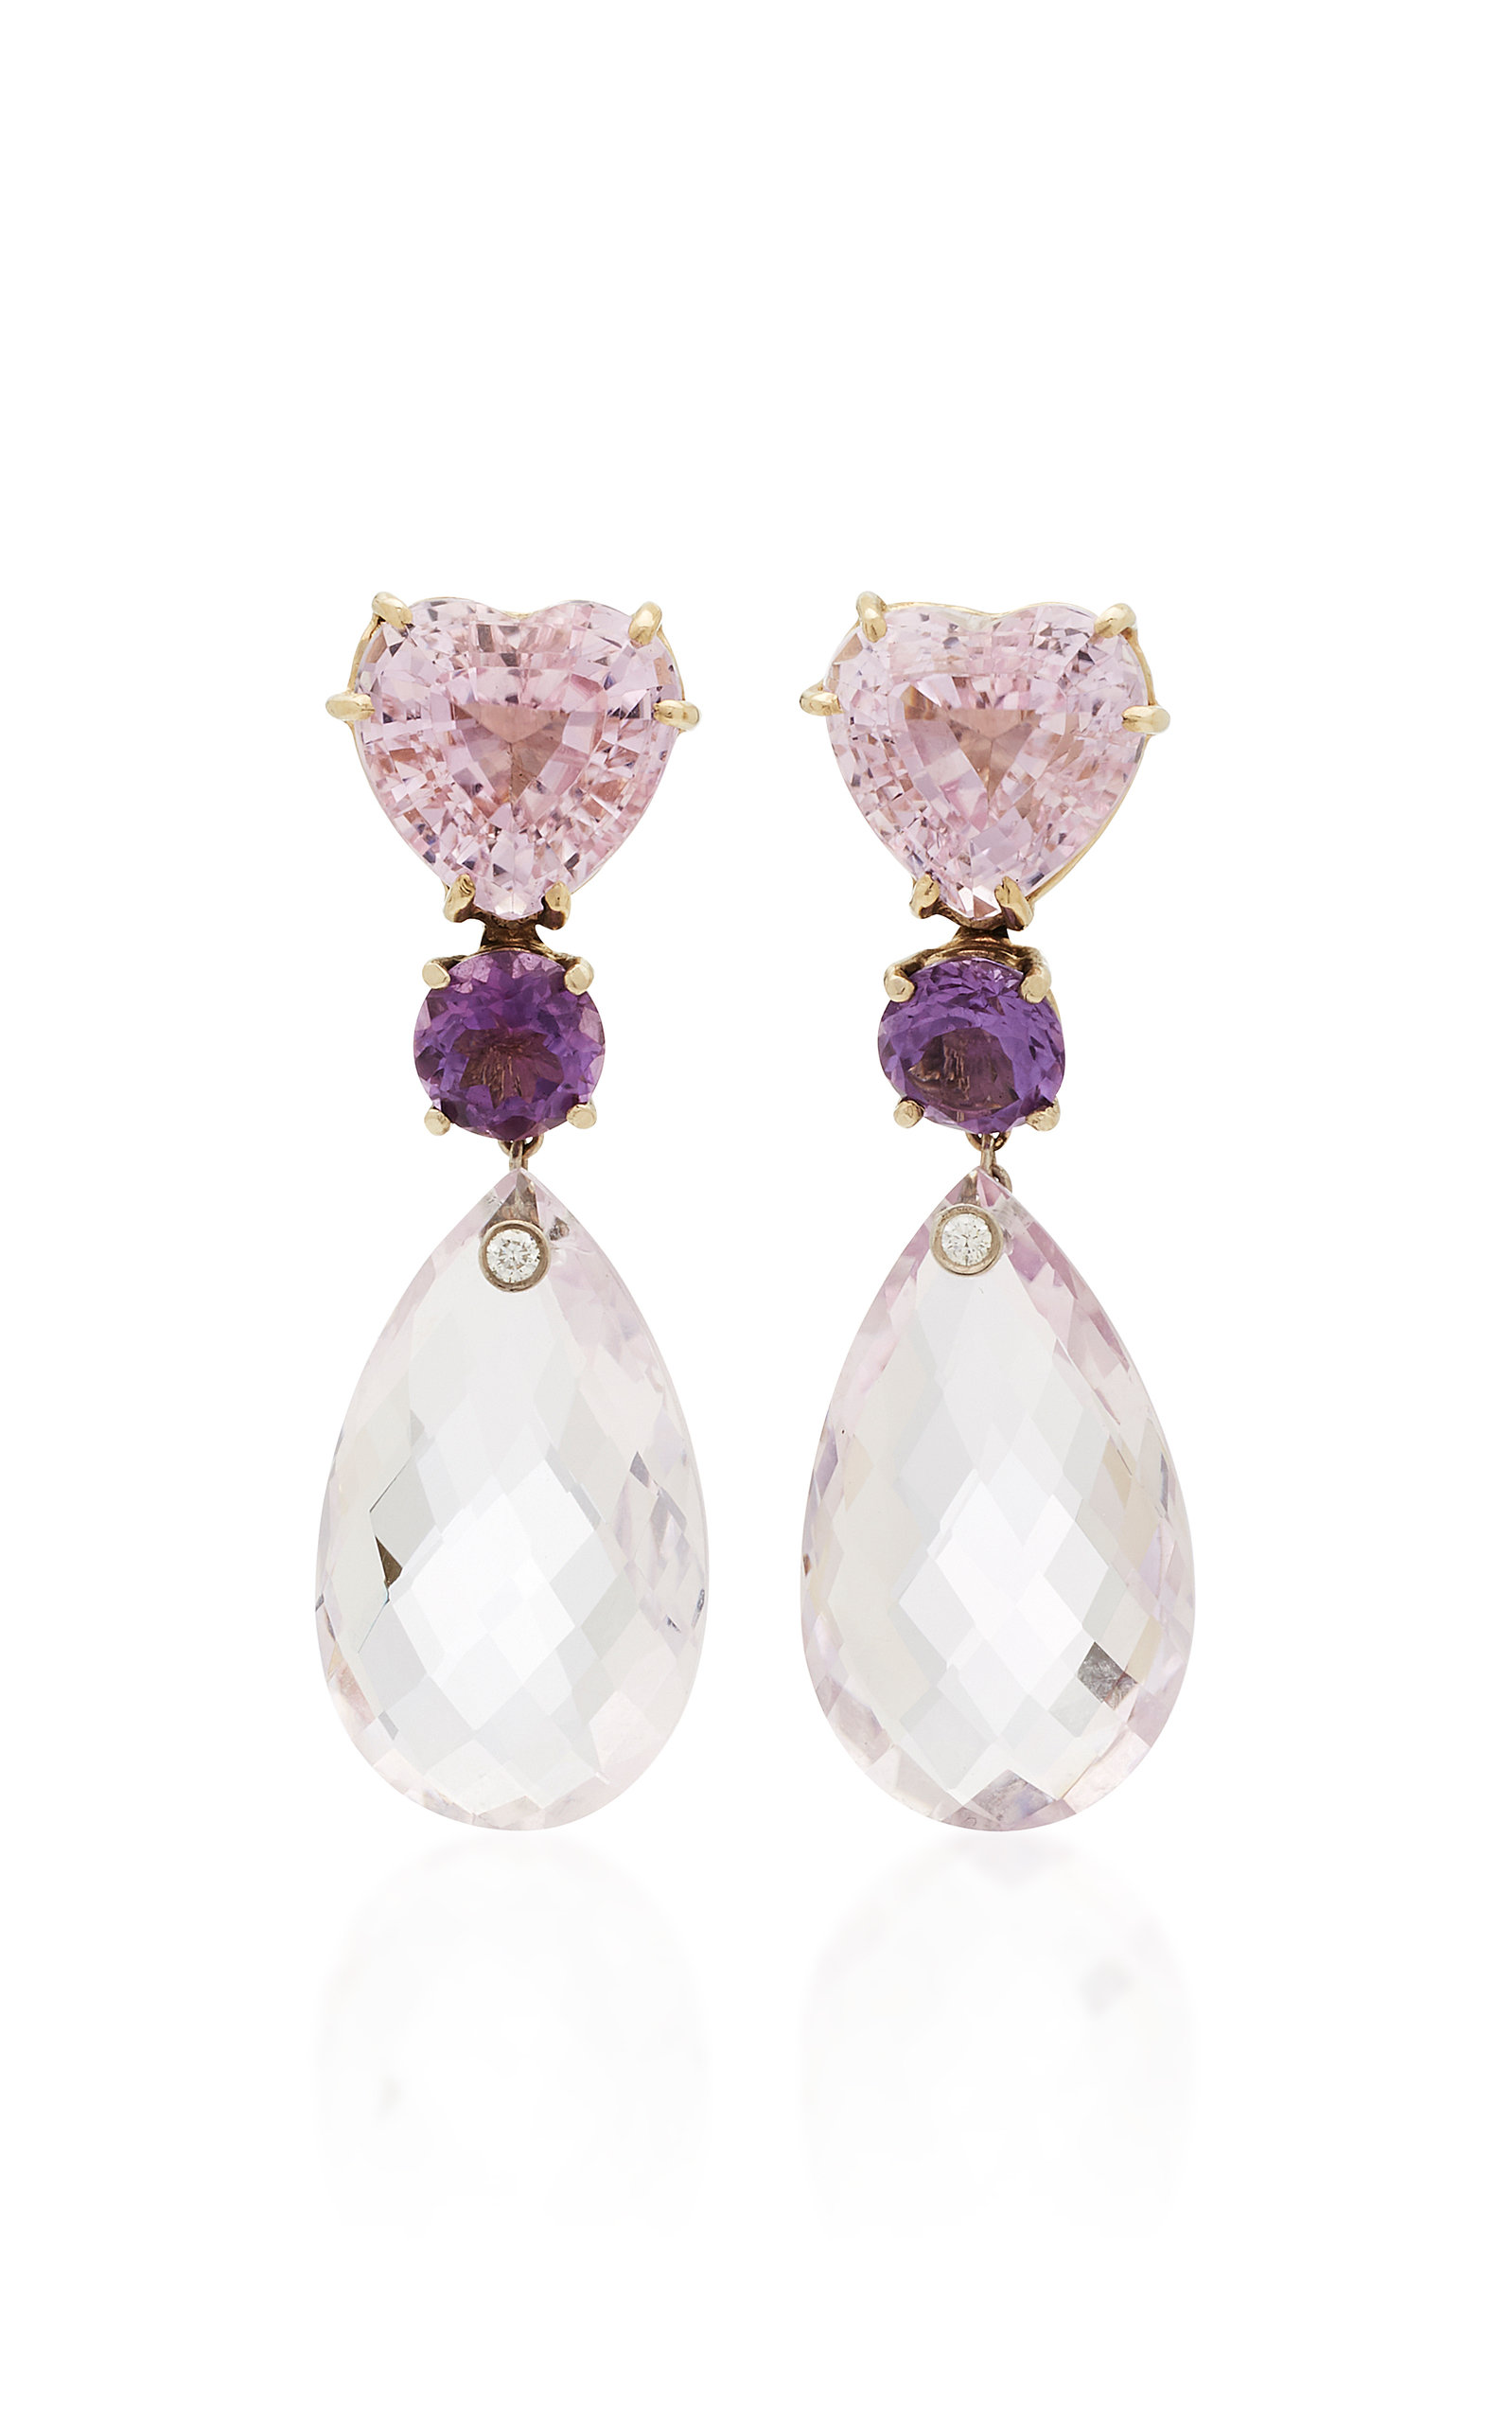 woodstock kunzite jewelers estate ferro jewelry product photo amethyst coral earrings